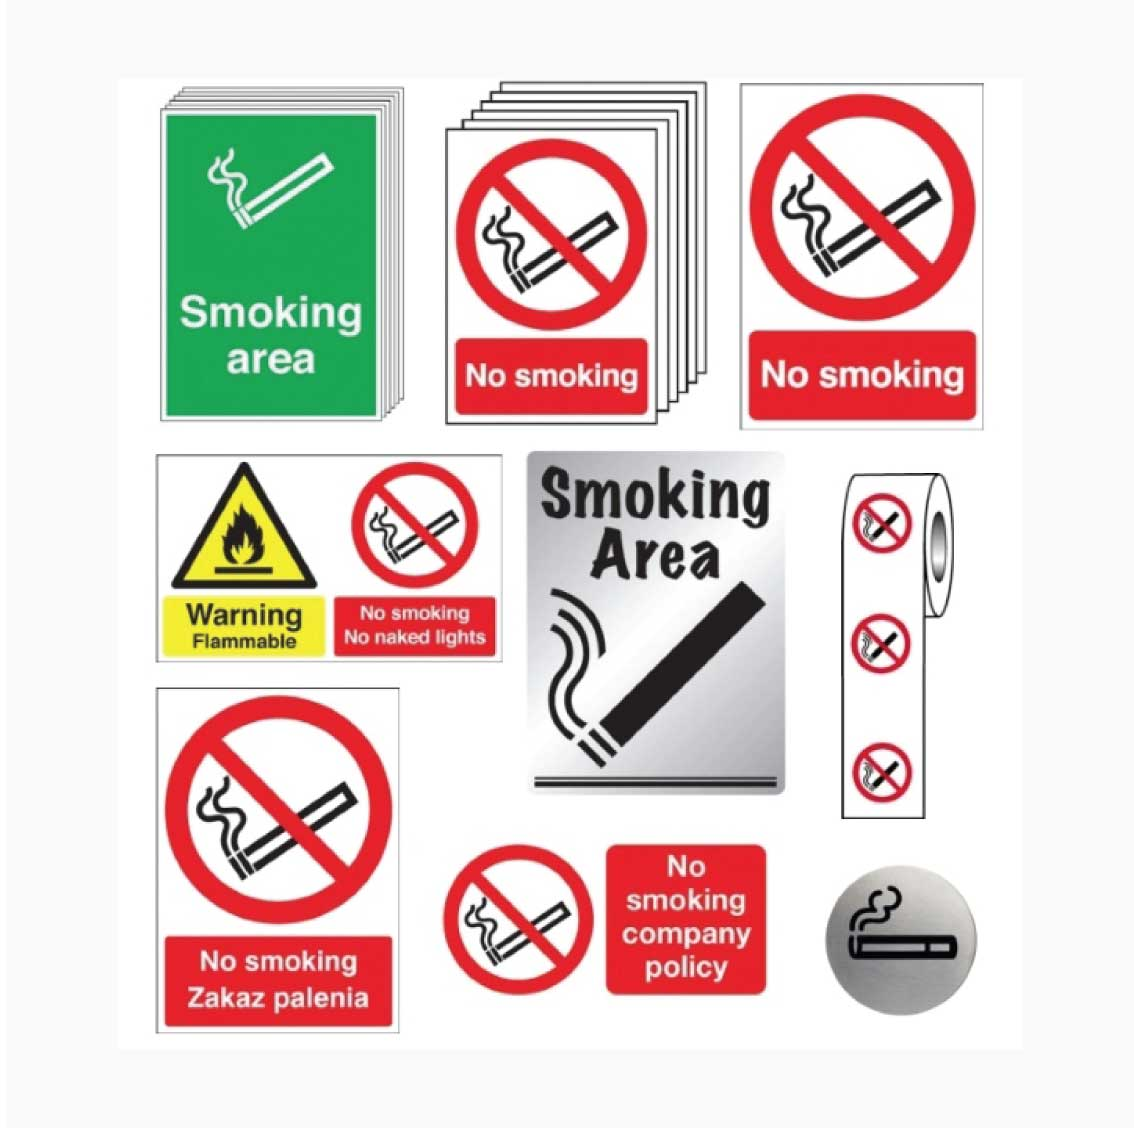 Smoking heath and safety signs